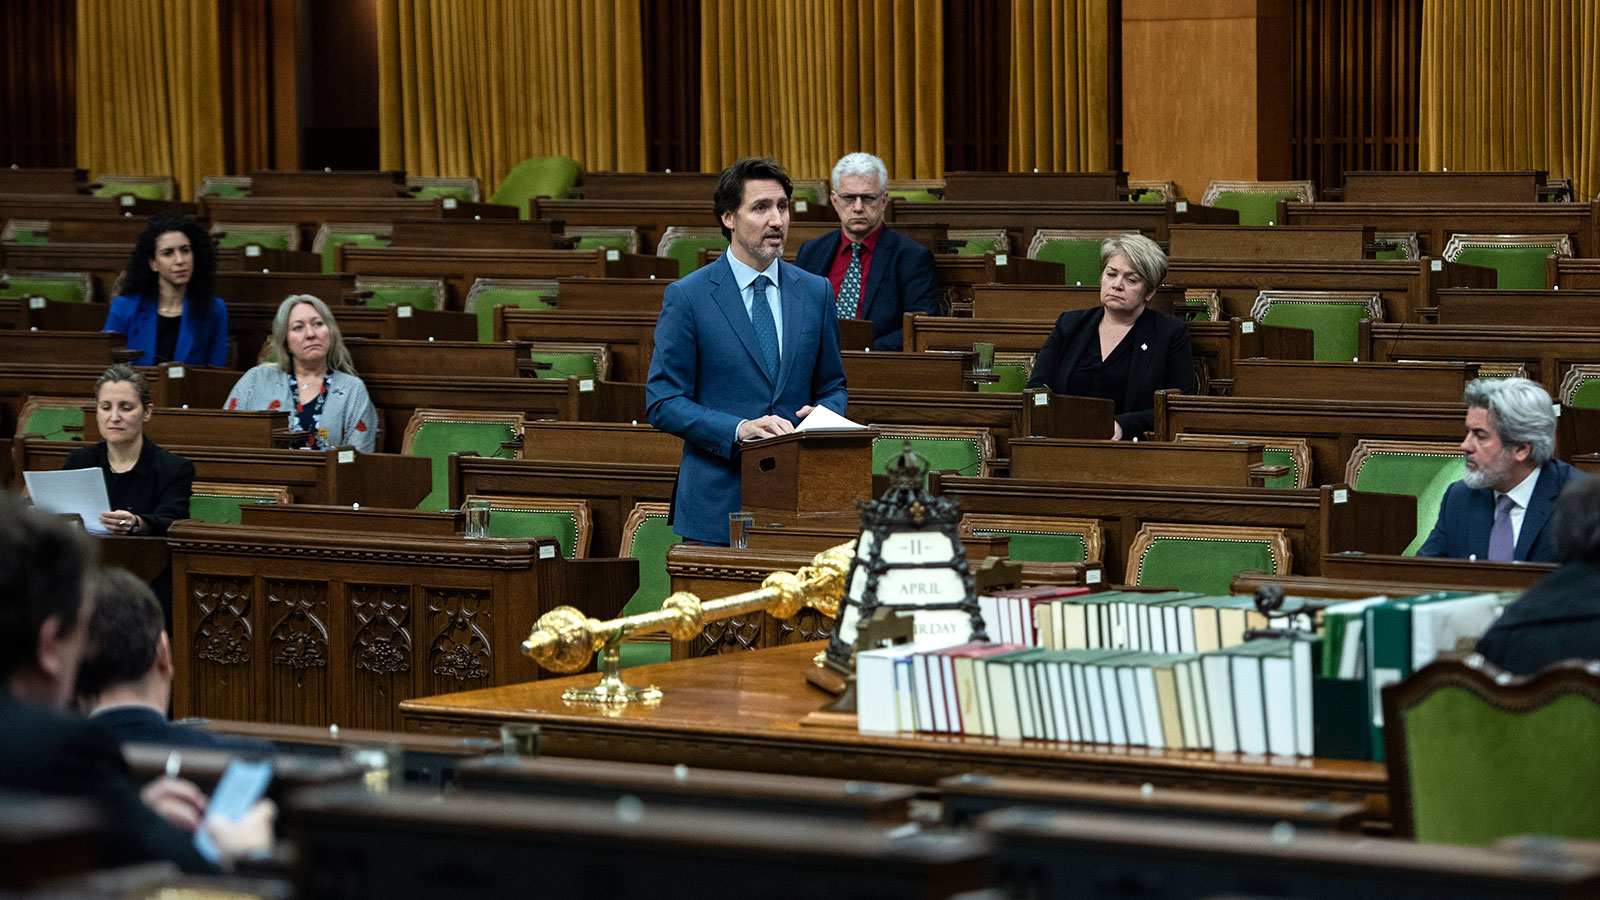 Prime Minister Justin Trudeau speaks in the House of Commons in Ottawa as Parliament was recalled to consider measures related to the Covid-19 pandemic on April 11.